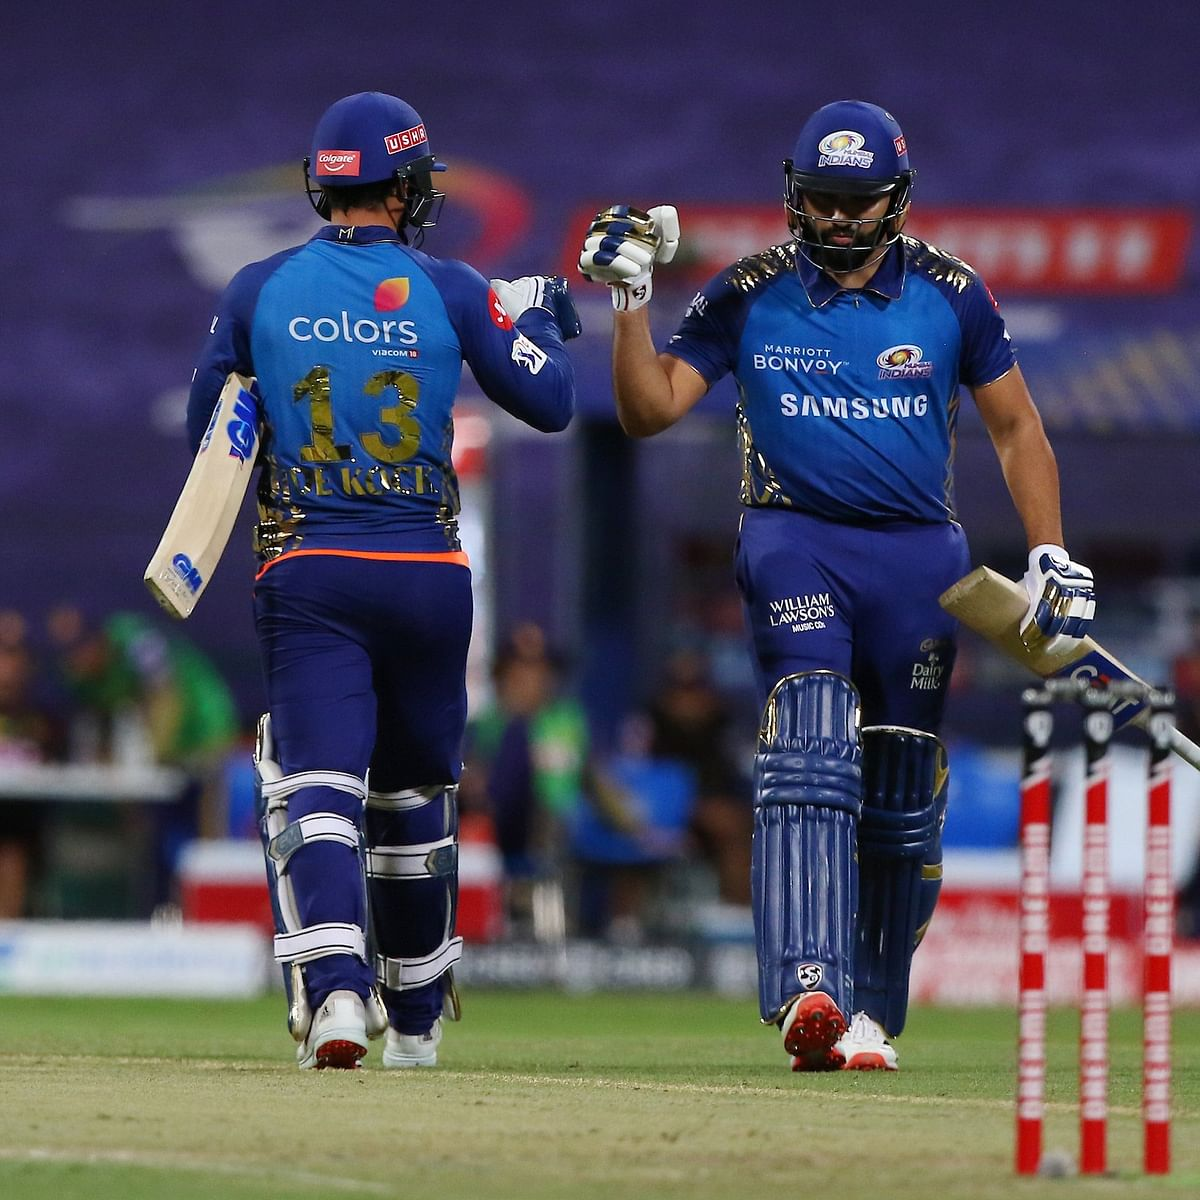 IPL 2020: Mumbai Indians extend win streak with 8-wicket victory over Kolkata Knight Riders